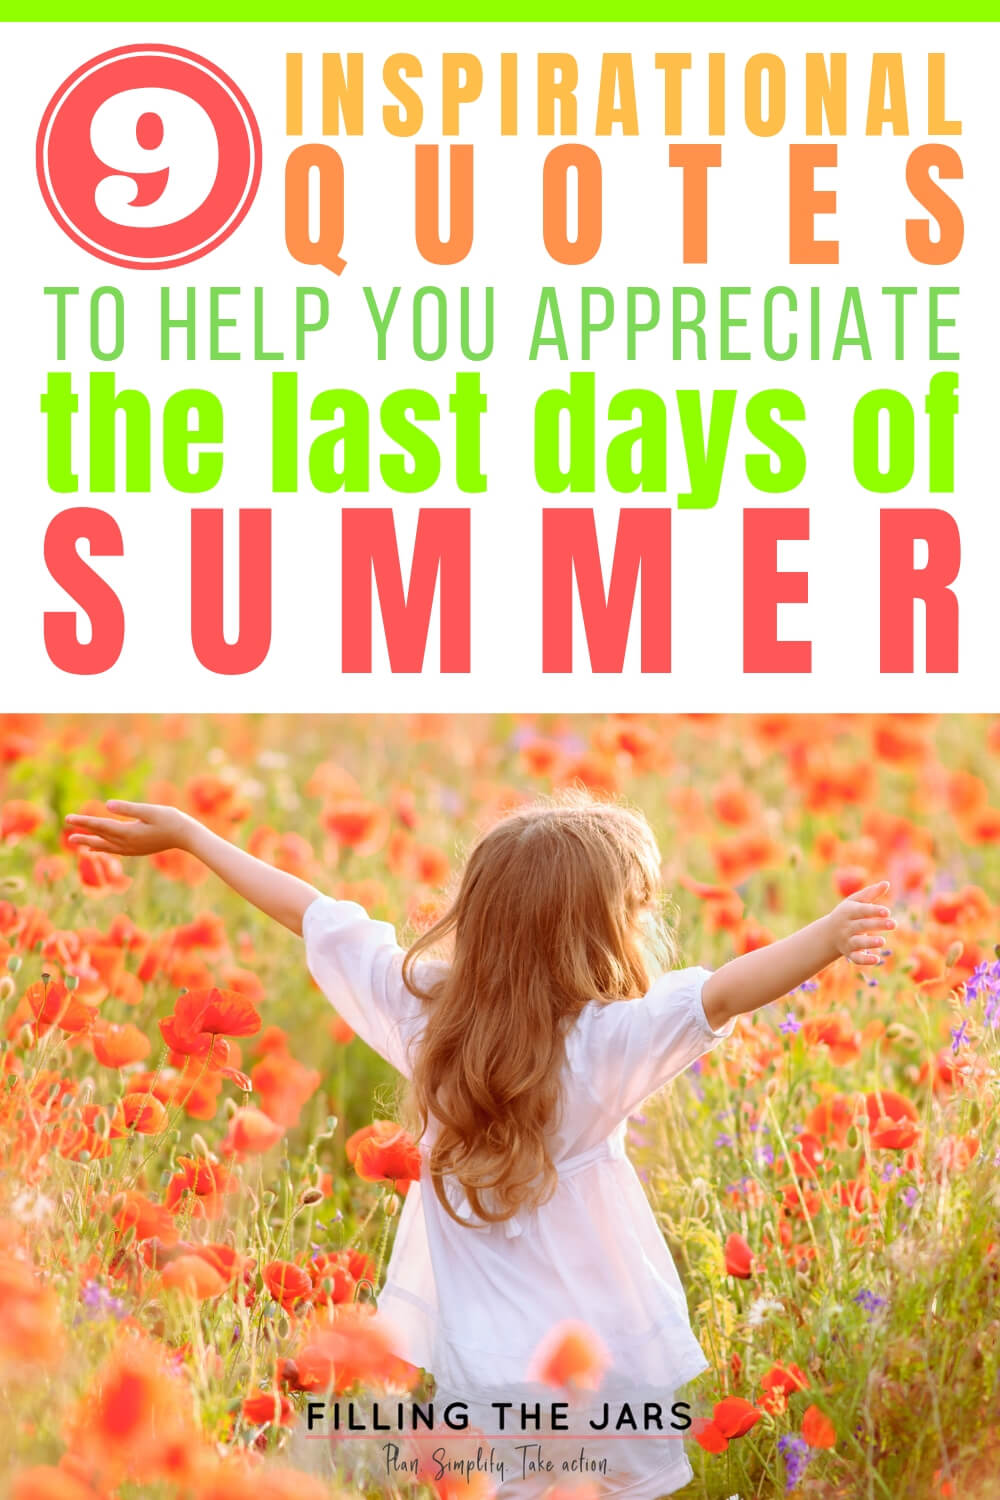 little girl in white outfit dancing in field of flowers with text overlay inspirational quotes for last days of summer